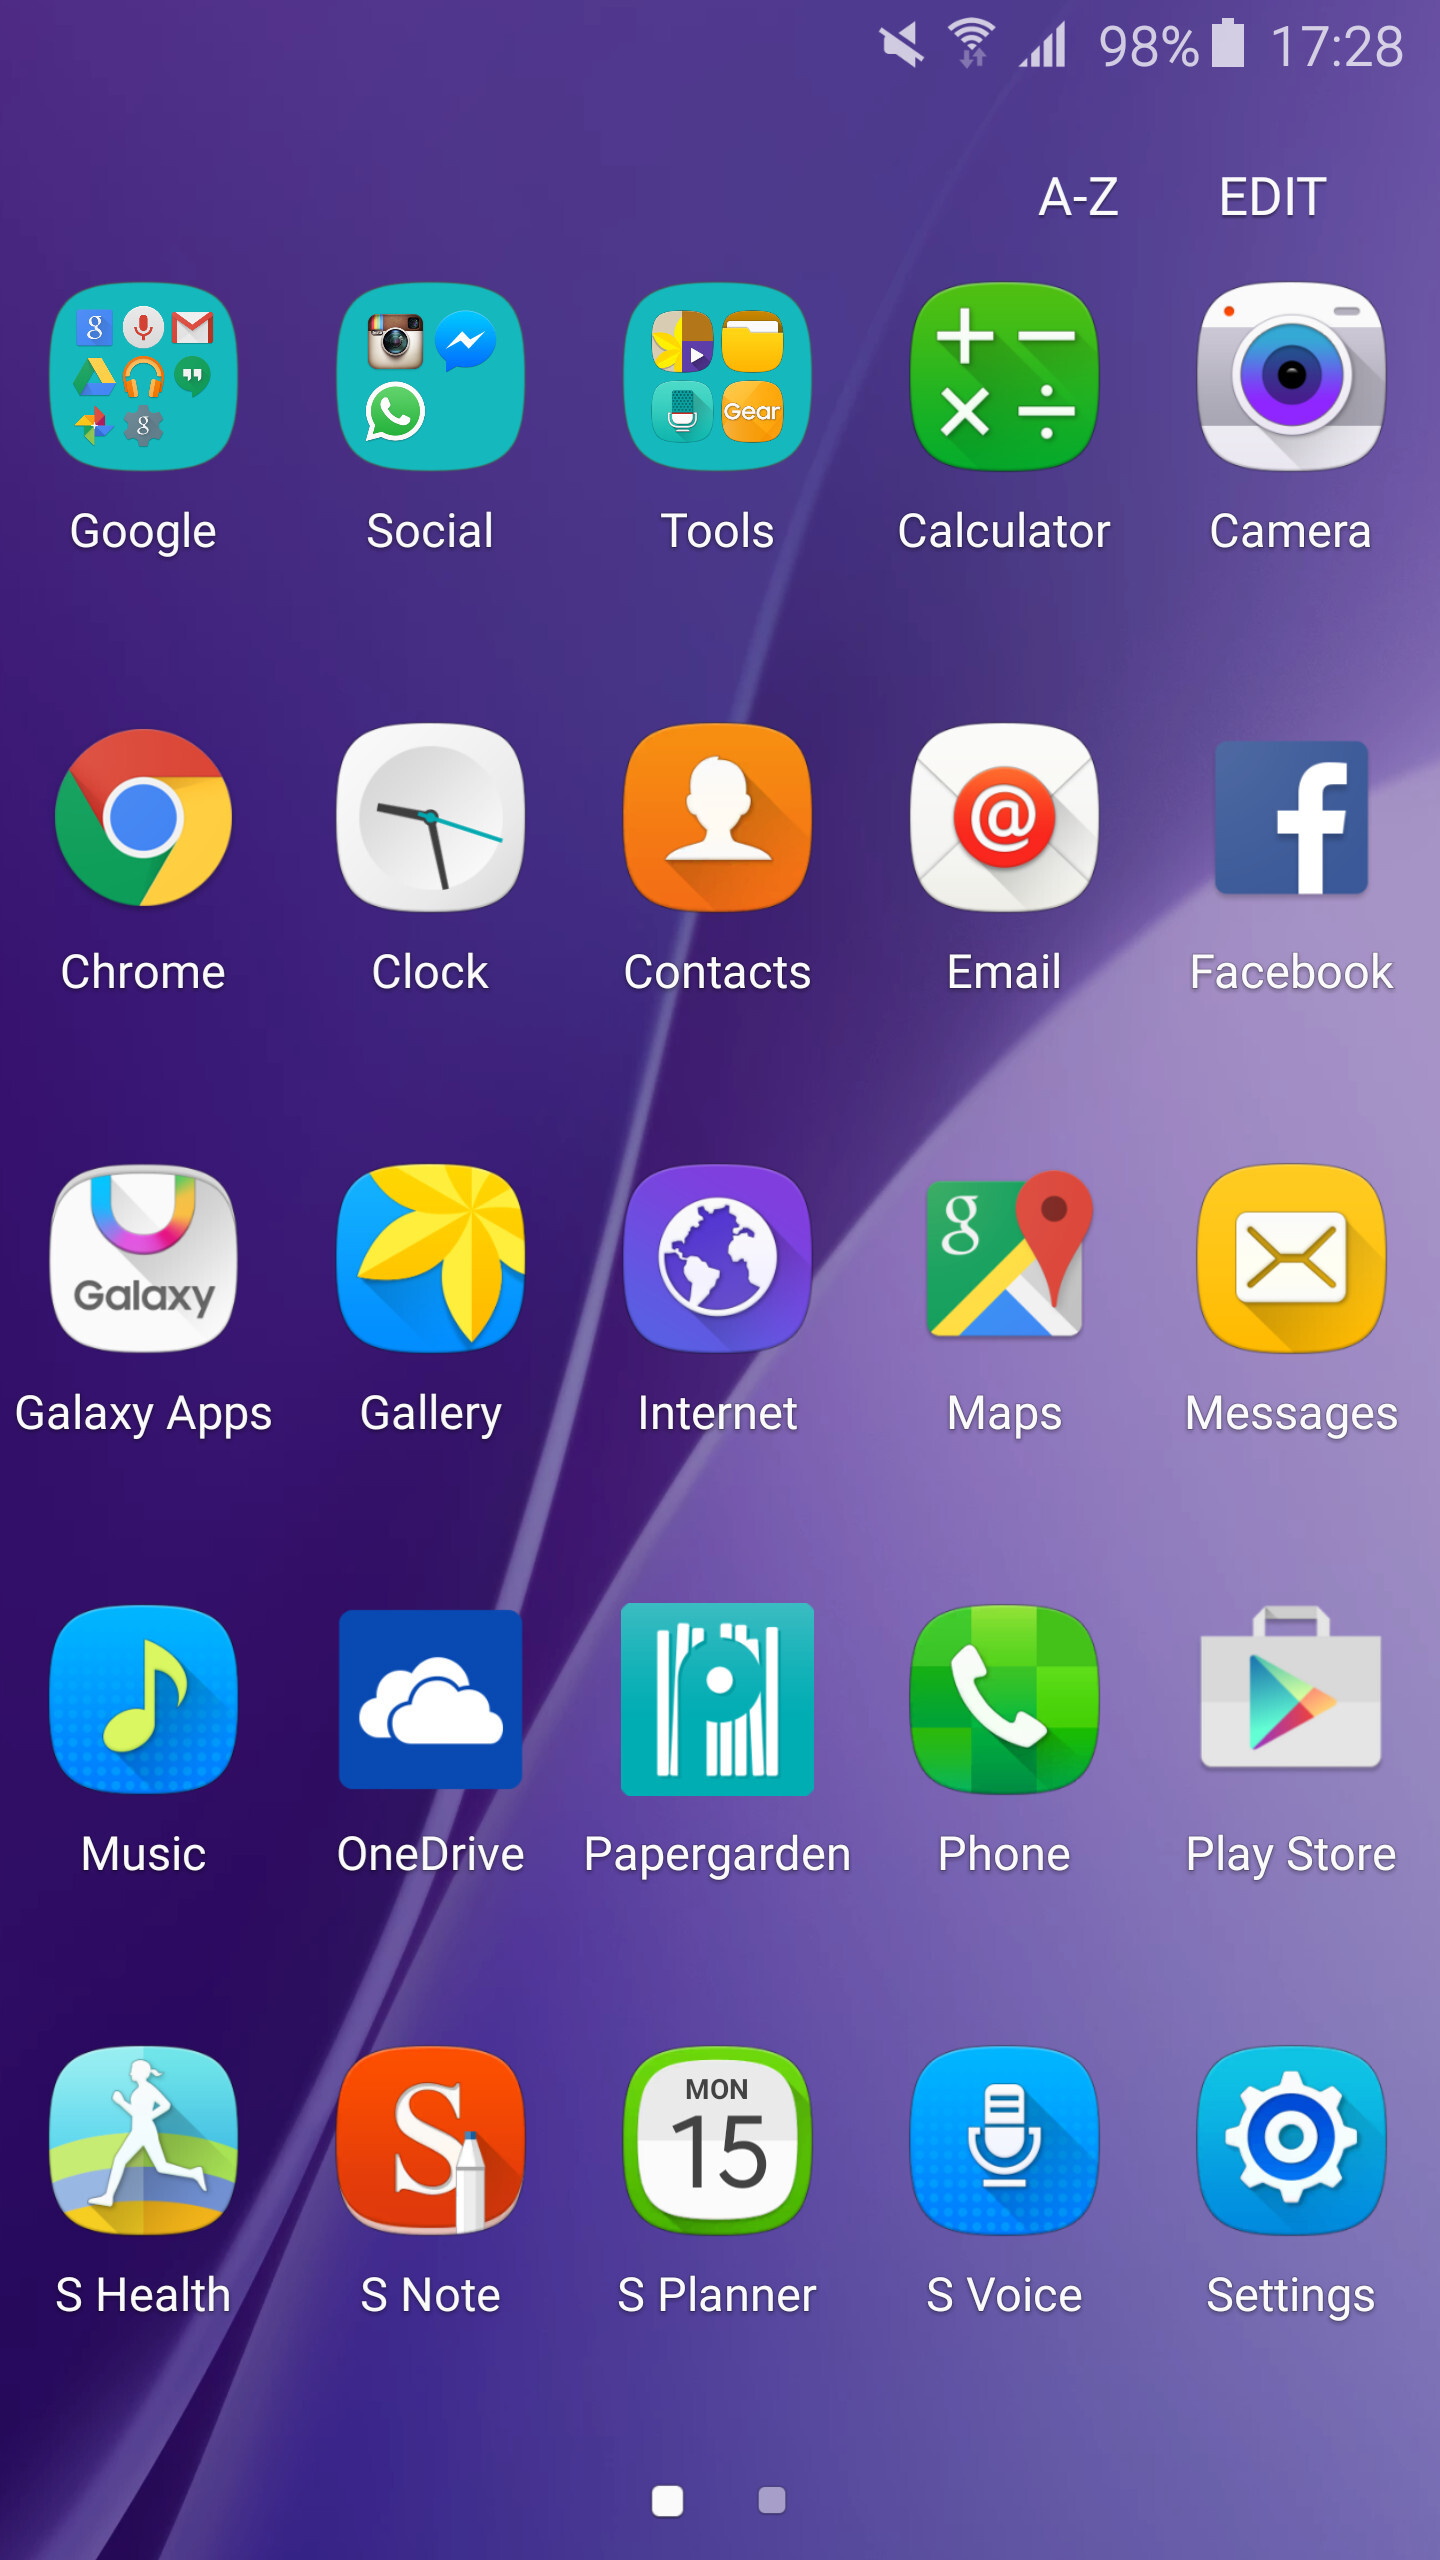 How to claim 100 GB of free OneDrive storage on your Galaxy S6, Note